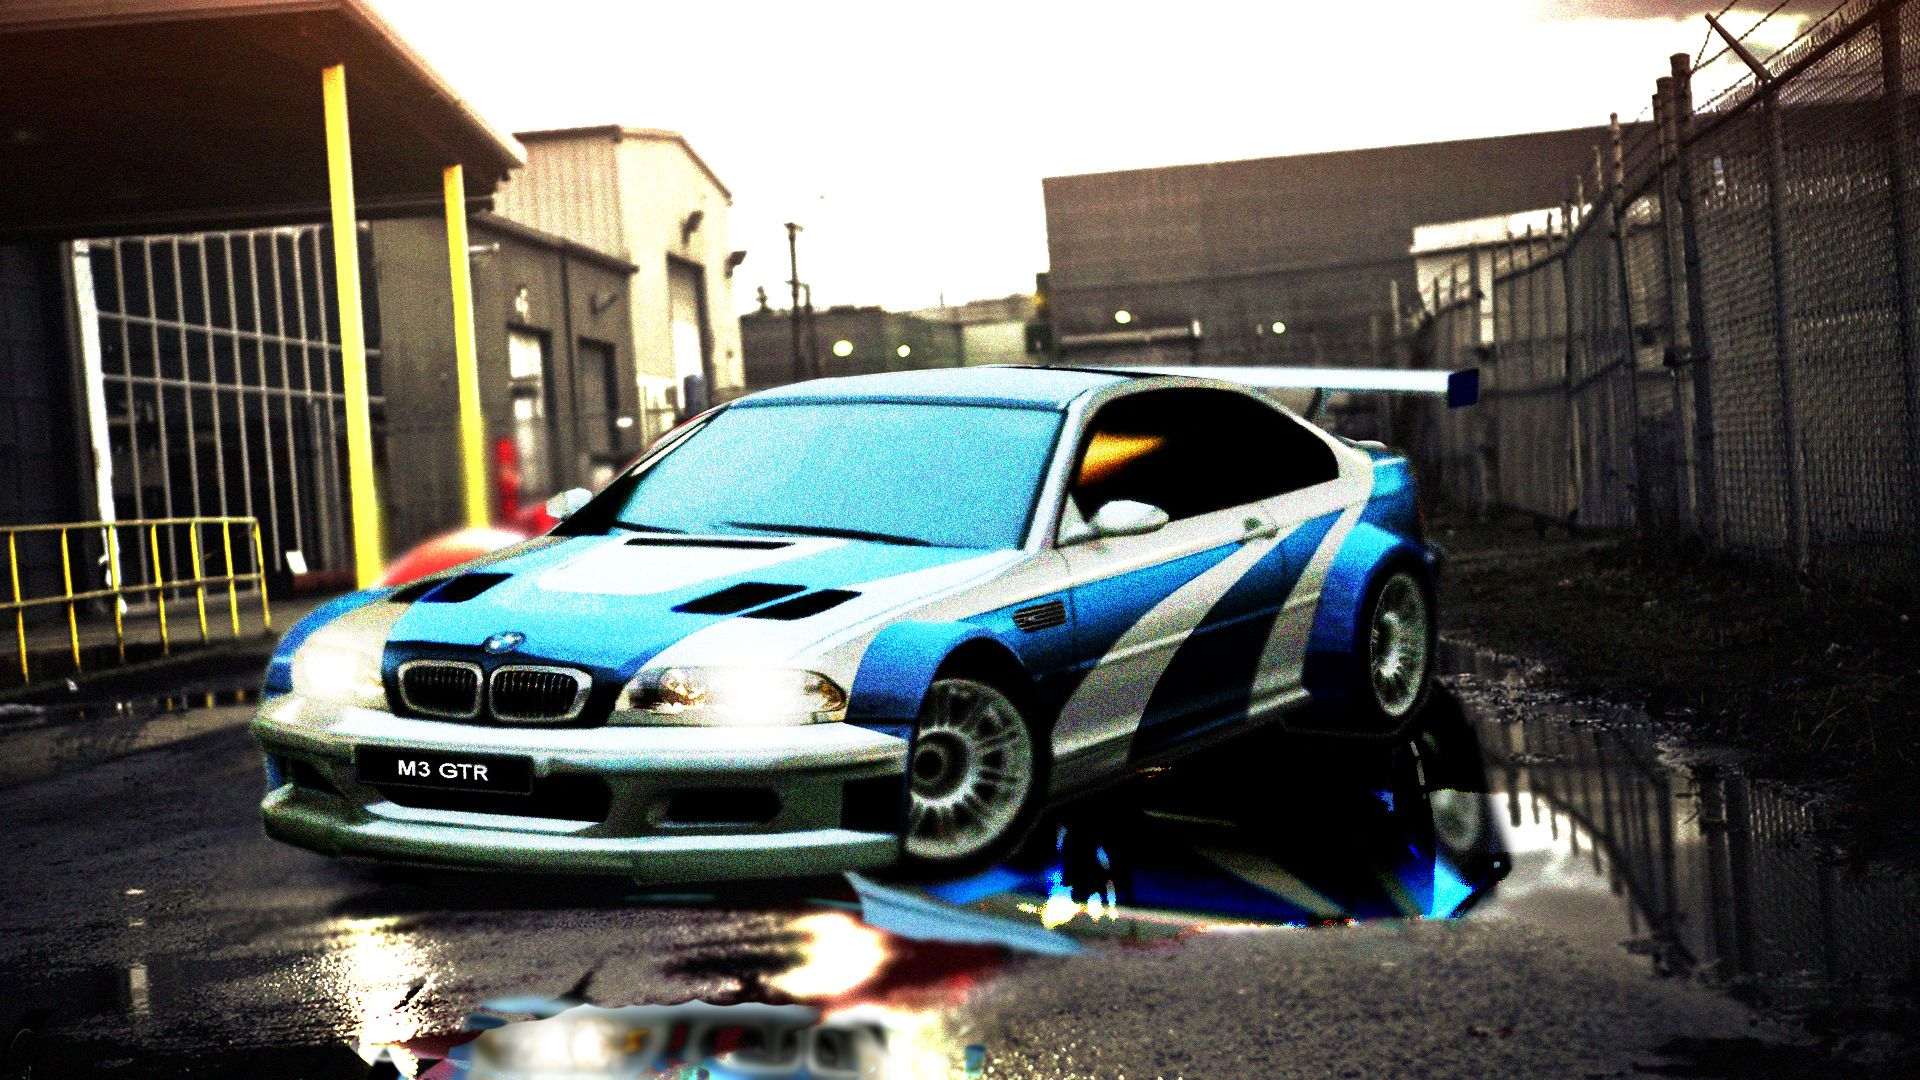 Bmw m3 gtr nfs most wanted wallpaper hd by gothicdiamond99 on